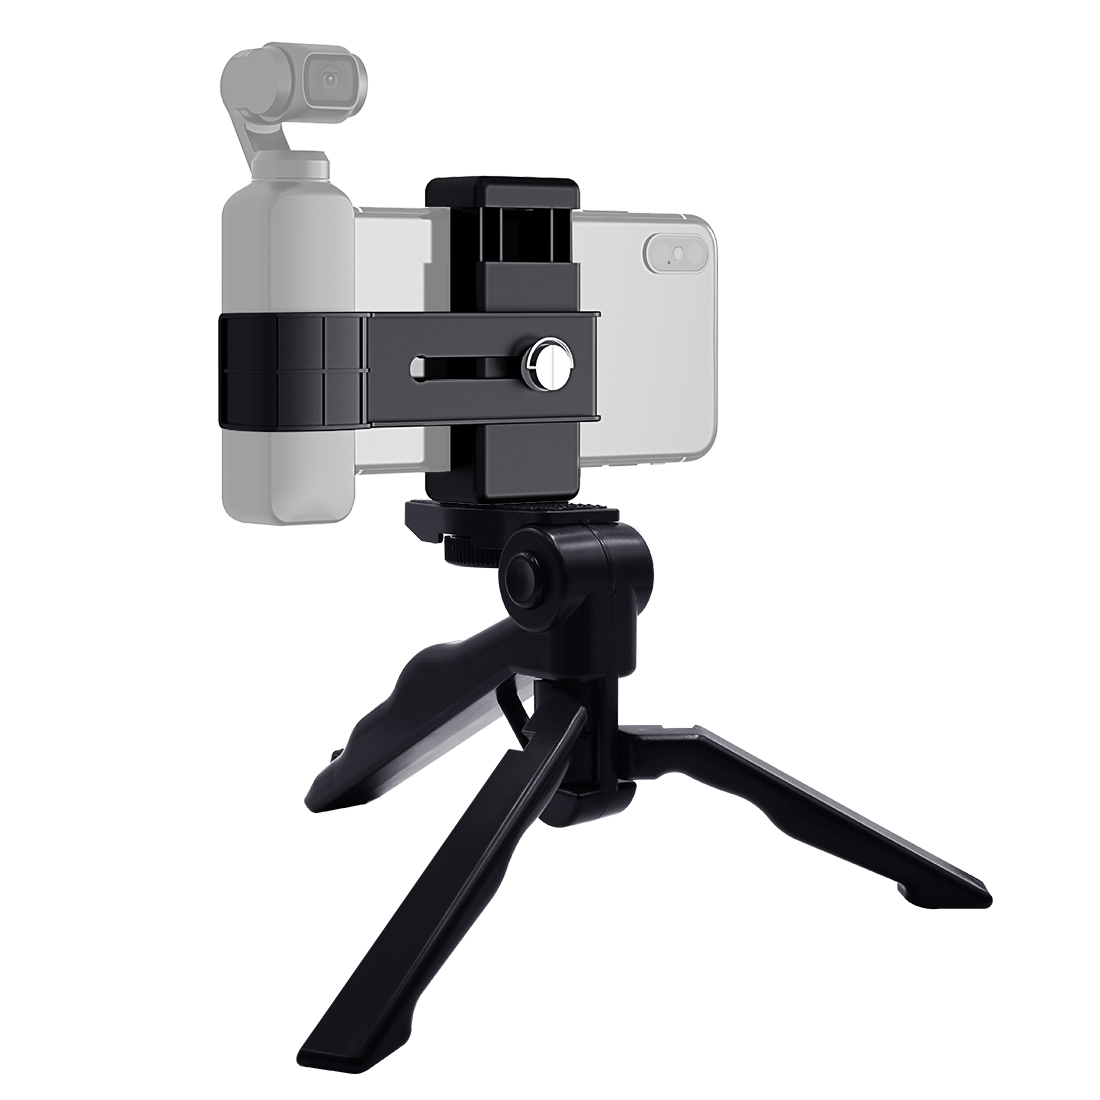 PULUZ Smartphone Fixing Clamp 1/4 inch Holder Mount Bracket + Grip Folding Tripod Mount Kits for DJI OSMO Pocket